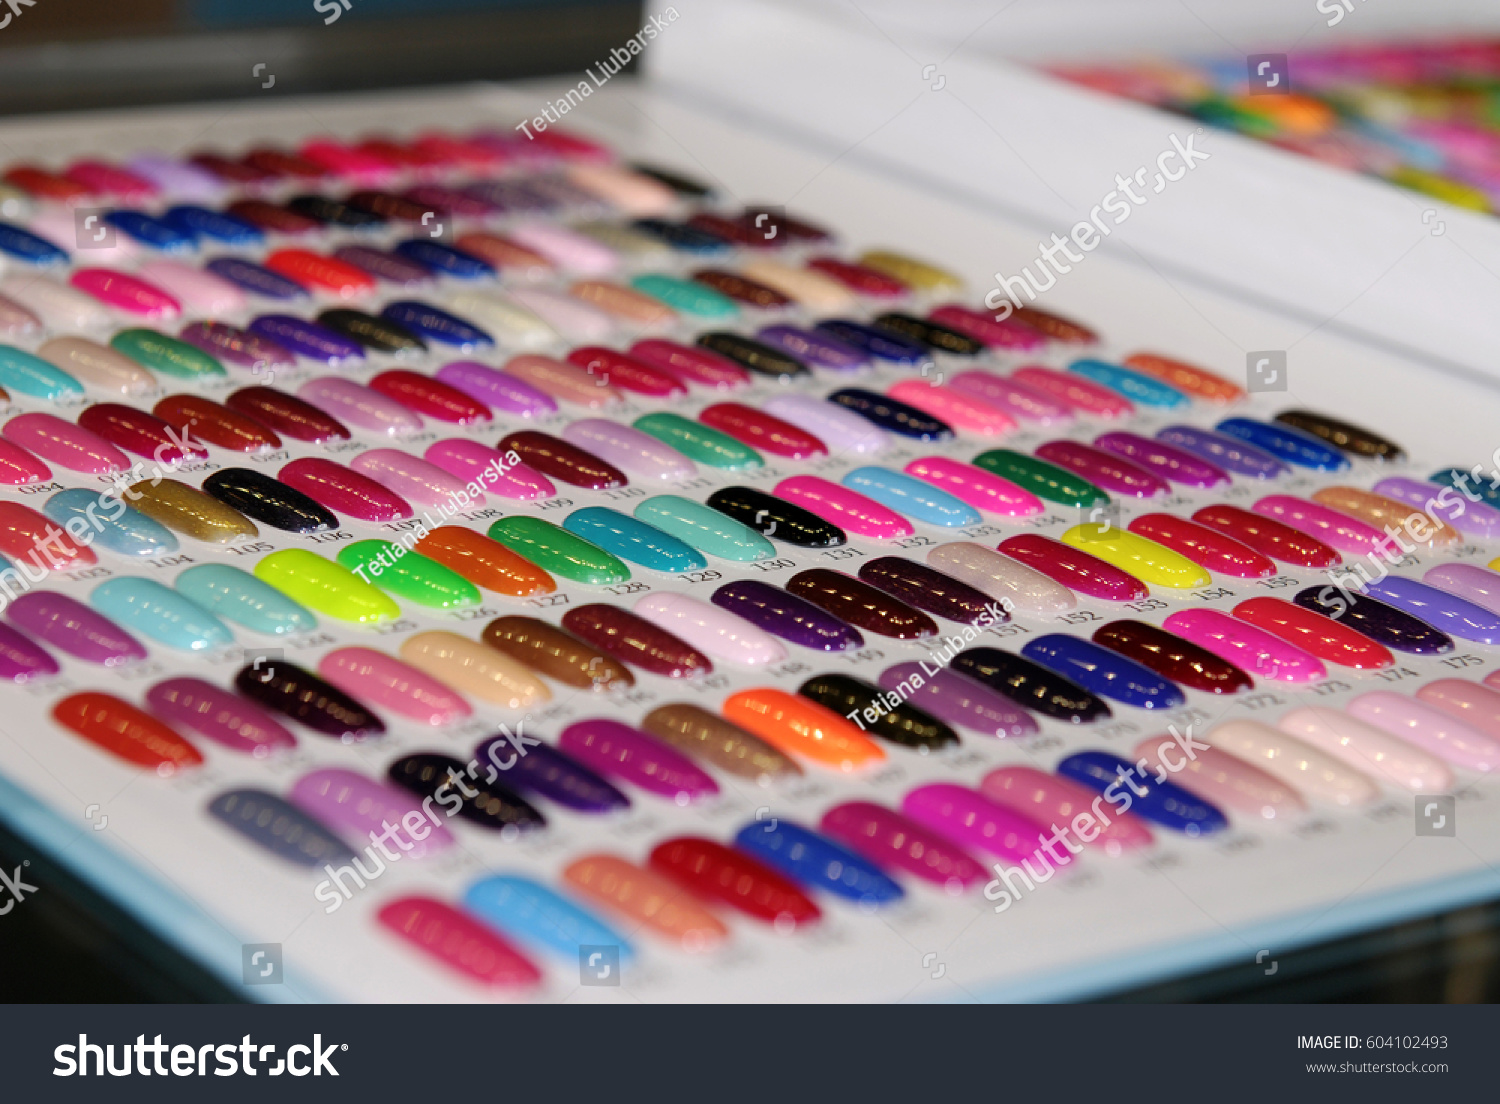 Samples Color Nail Polish Palette Examples Stock Photo (Royalty Free ...